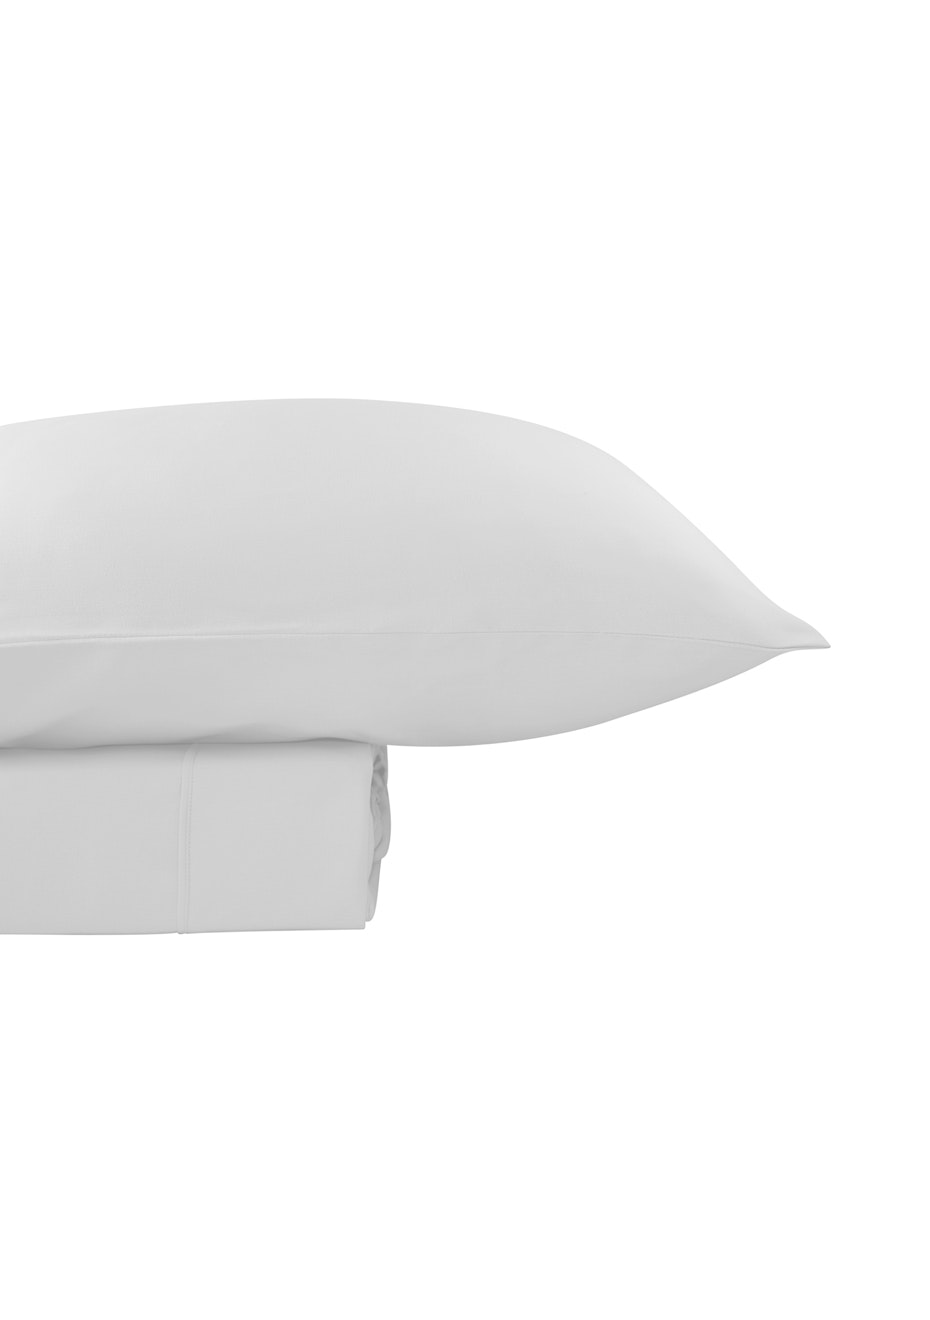 Thermal Flannel Sheet Sets - White - King Bed